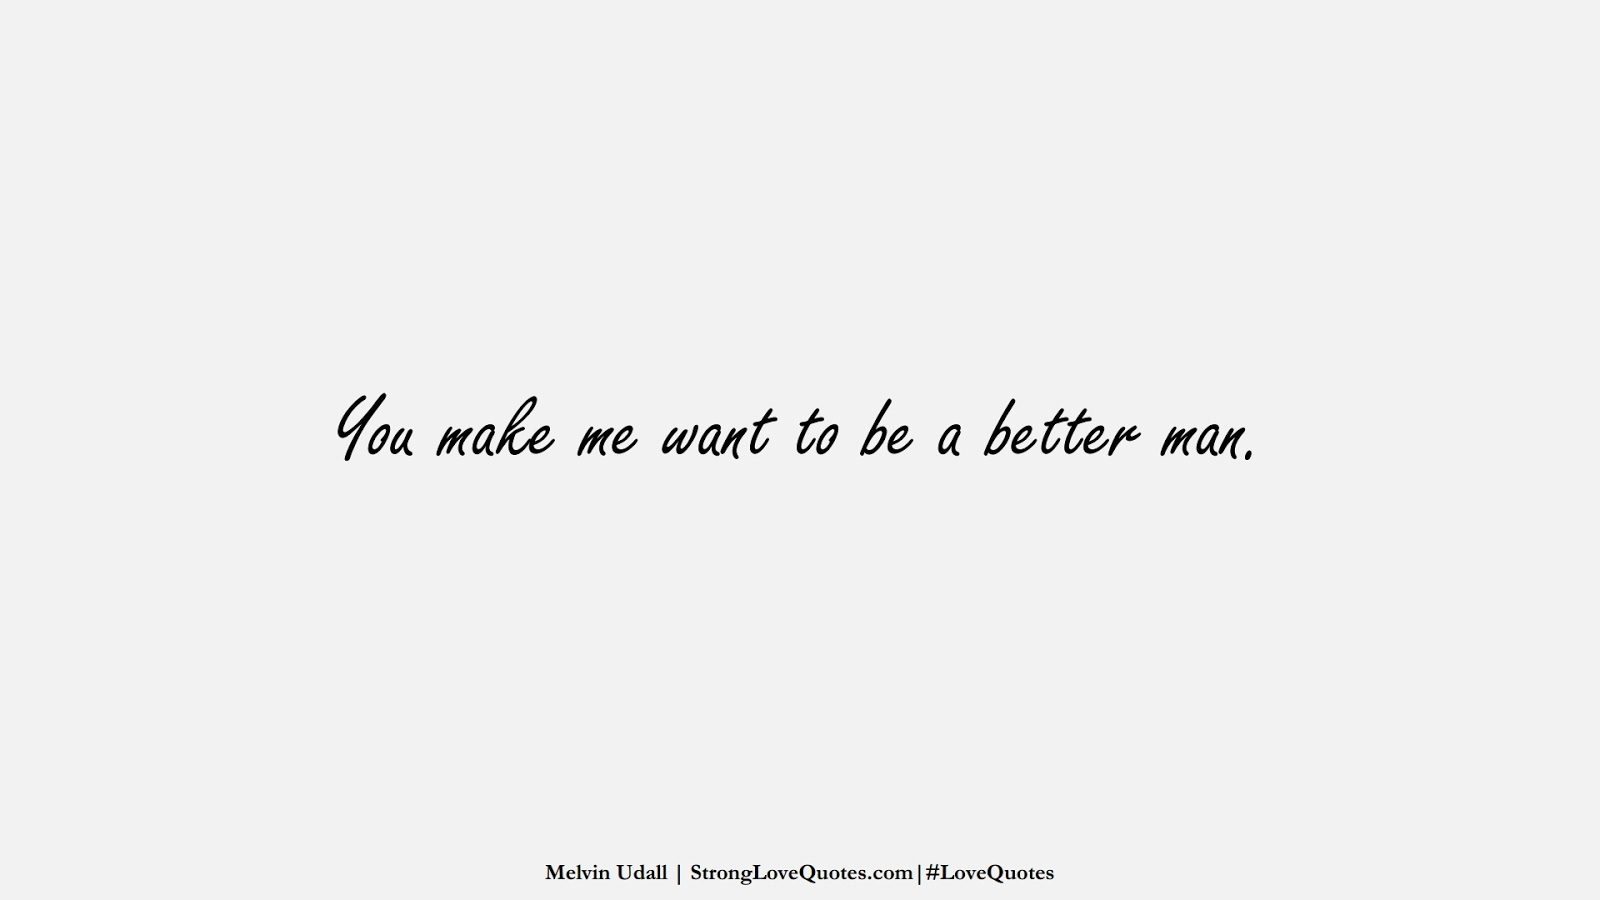 You make me want to be a better man. (Melvin Udall);  #LoveQuotes